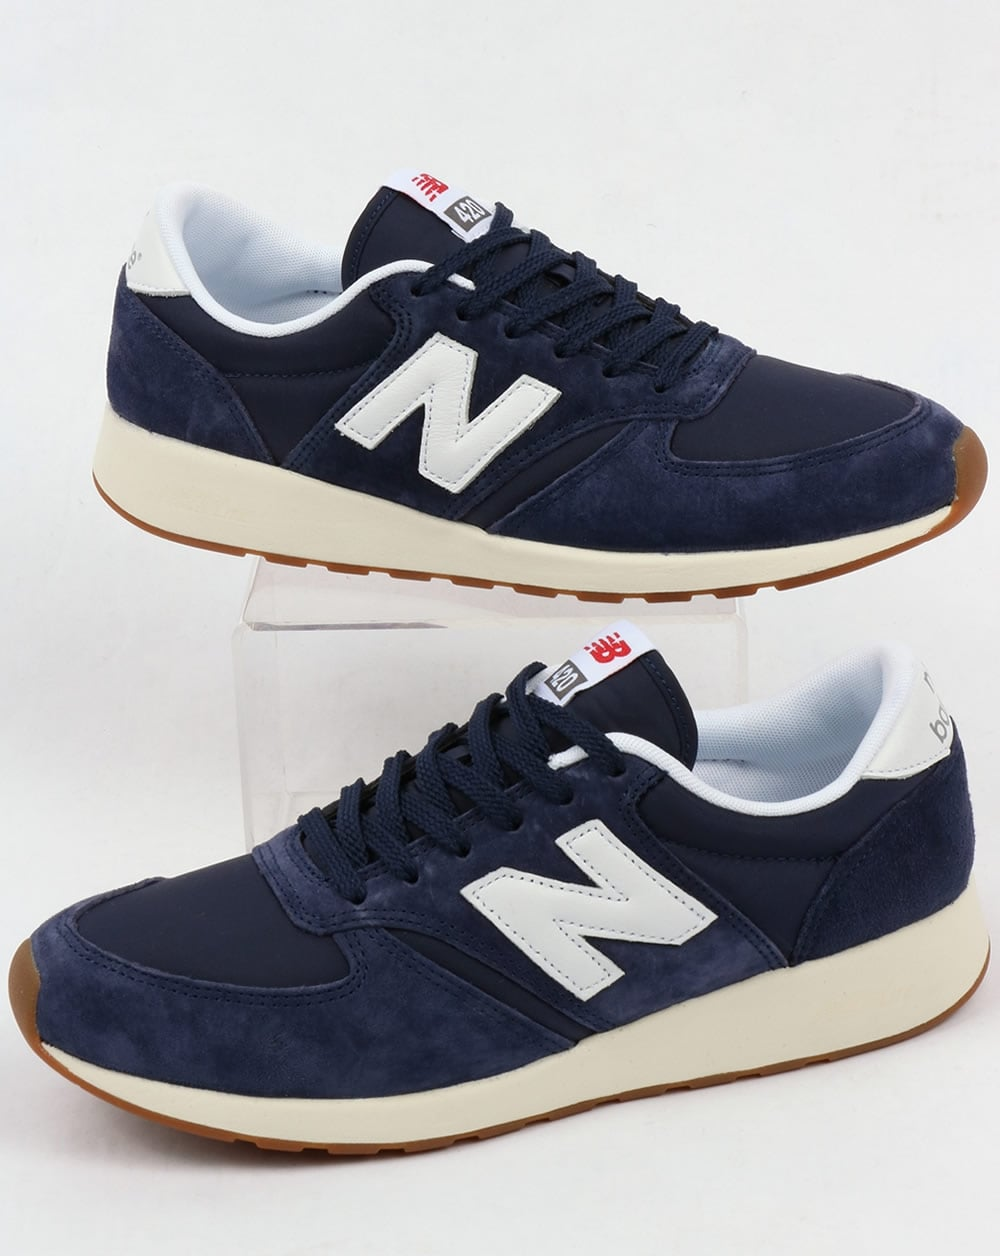 Navywhite 420 Balance Re Trainers New Engineered Suede shoes blue v5YpddwqAZ